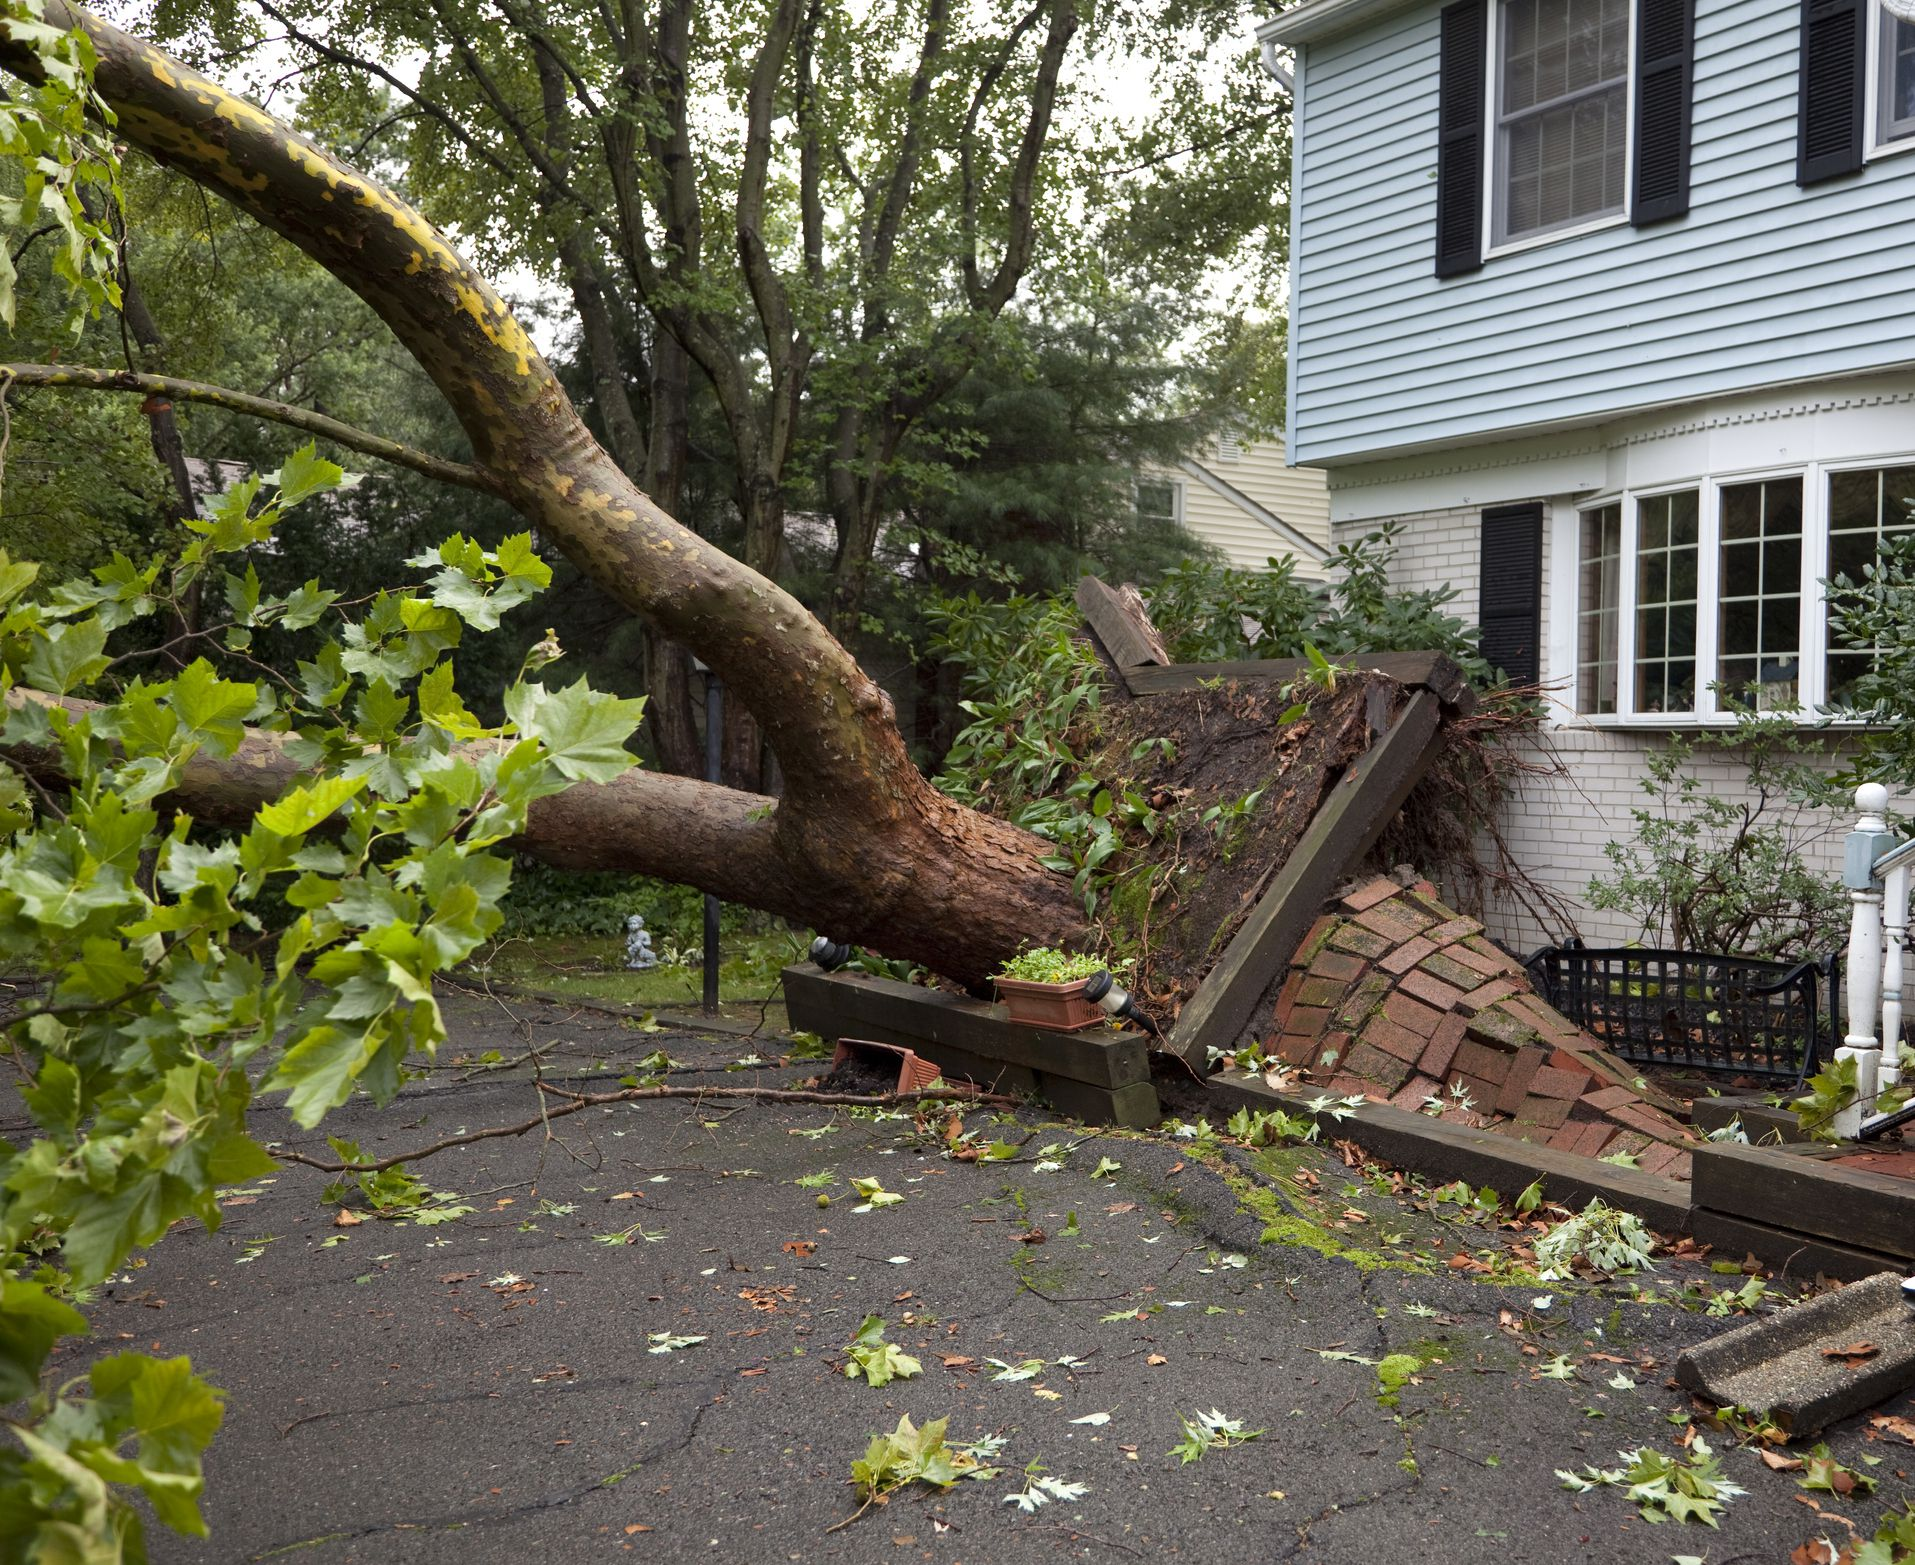 Auto Insurance Online >> Home Insurance Claims and Damage Caused by Trees